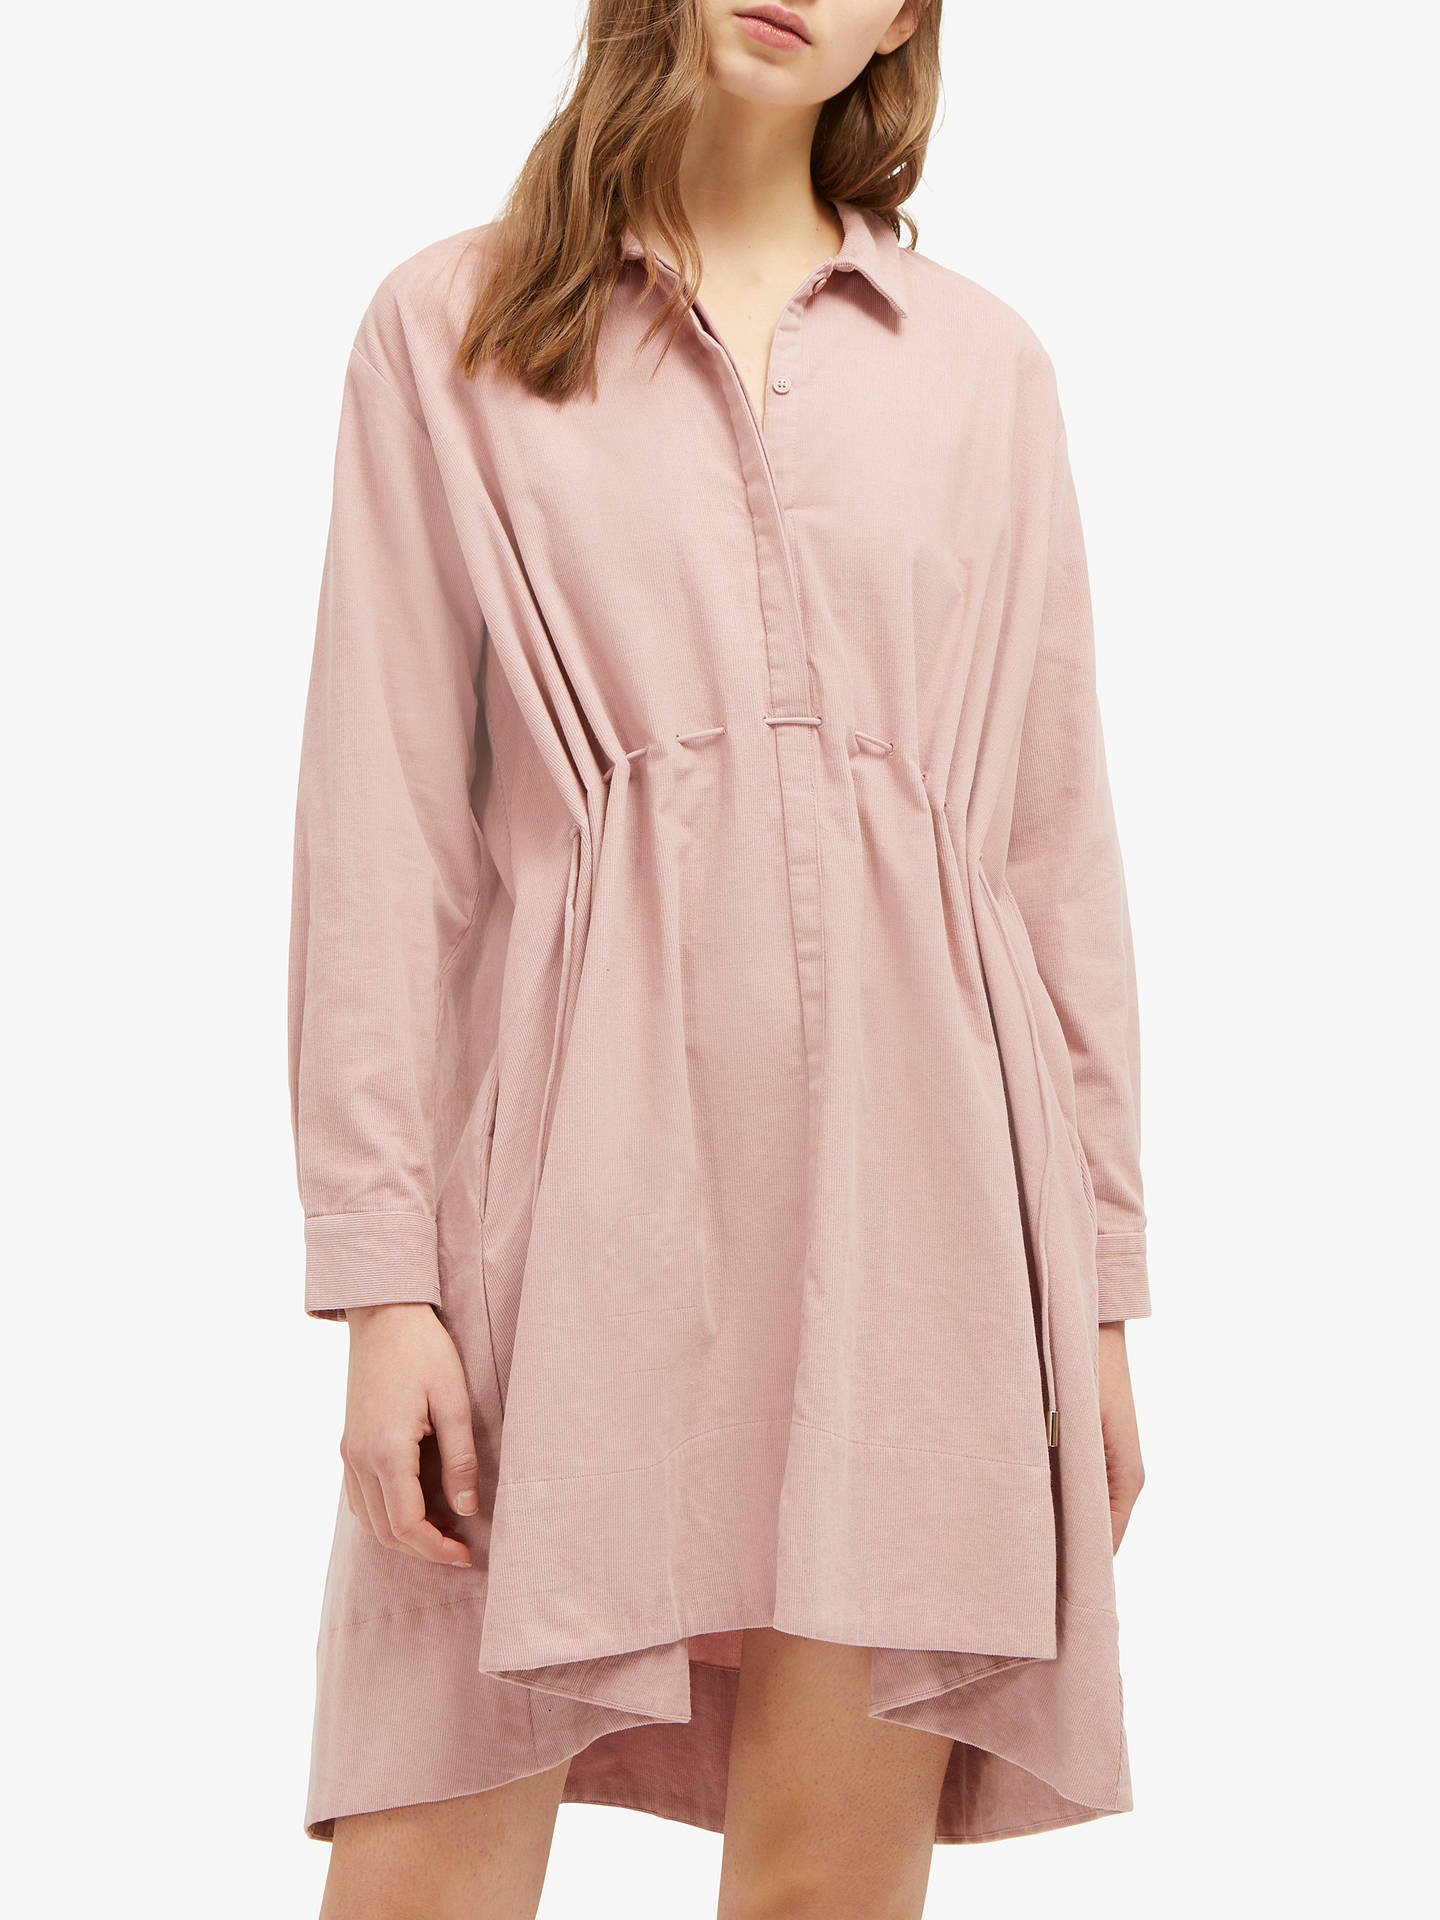 1fd7545577 BuyFrench Connection Smythson Shirt Dress